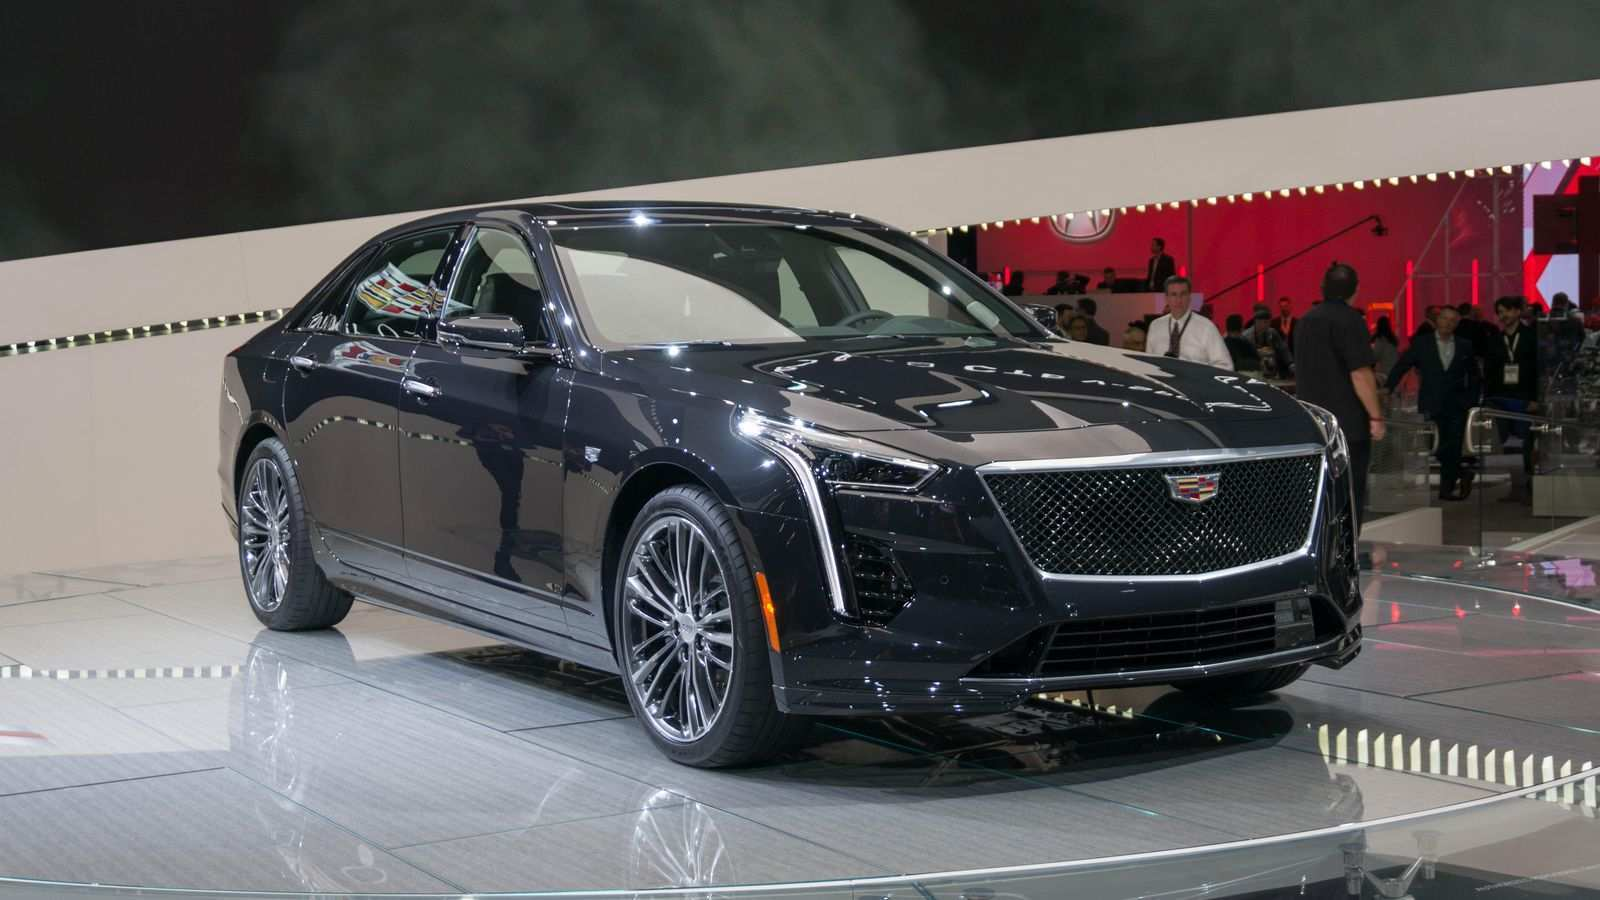 48 Best 2020 Cadillac Ct6 V8 Overview